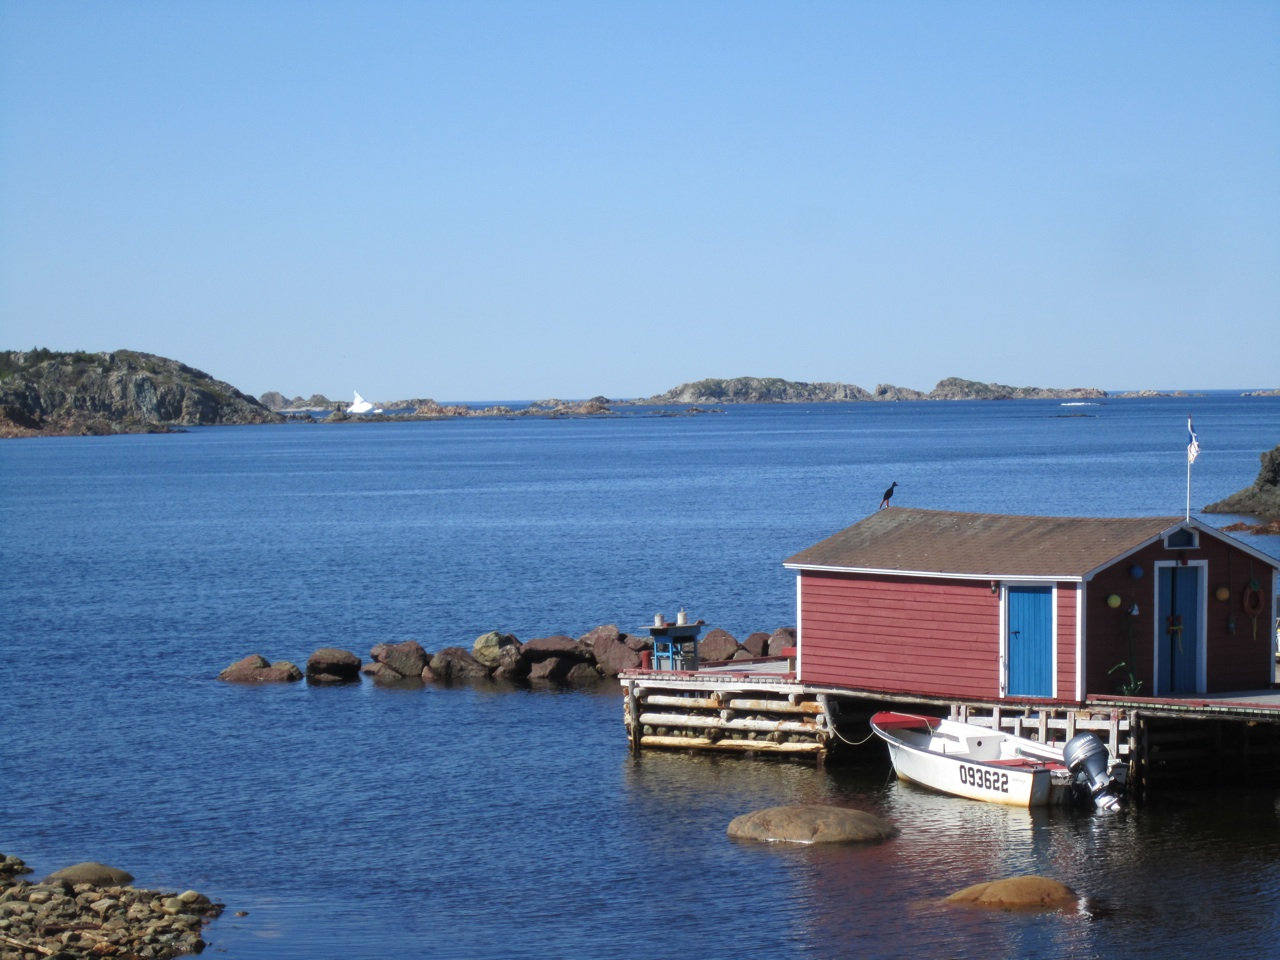 Docks And Fishing Shacks Over The Waters In Twillingate.  Iceberg In The Far Background.